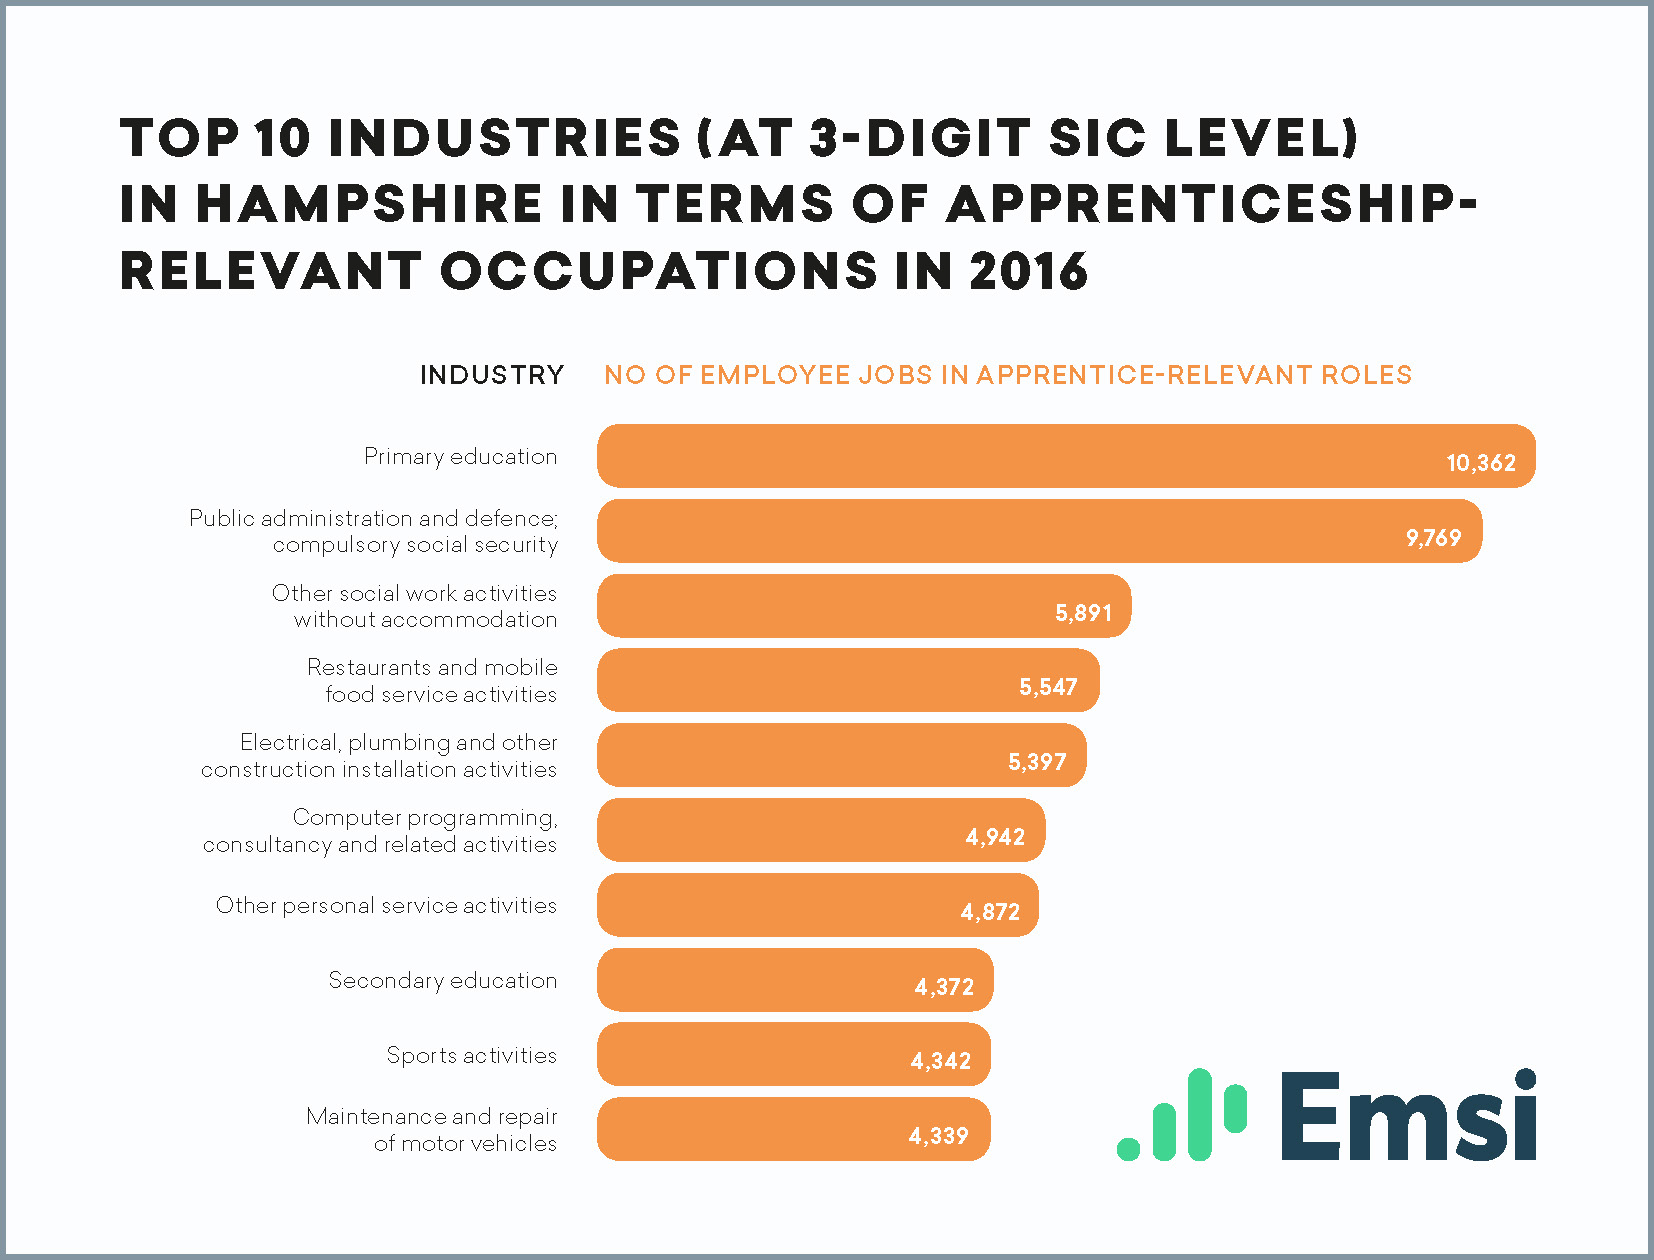 Top 10 industries in Hampshire in terms of apprenticeship-relevant occupations